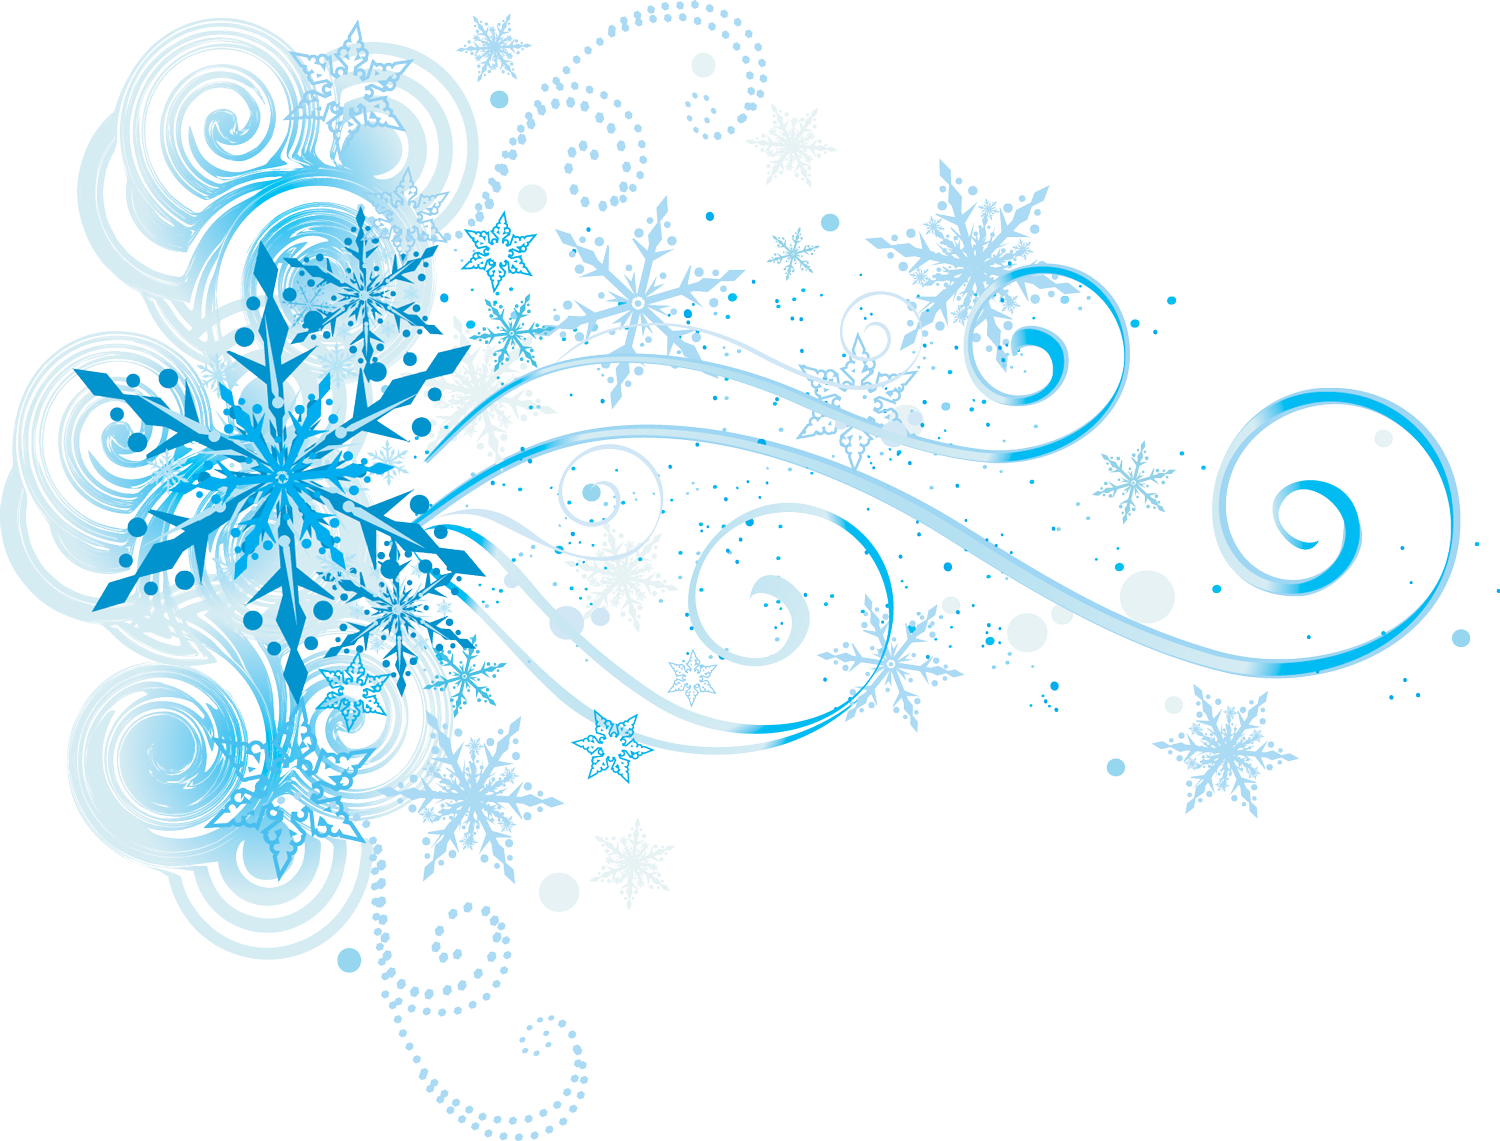 Snowflake clipart frozen banner royalty free library wrap around the shoulder with ribbons flowing down the arm ... banner royalty free library